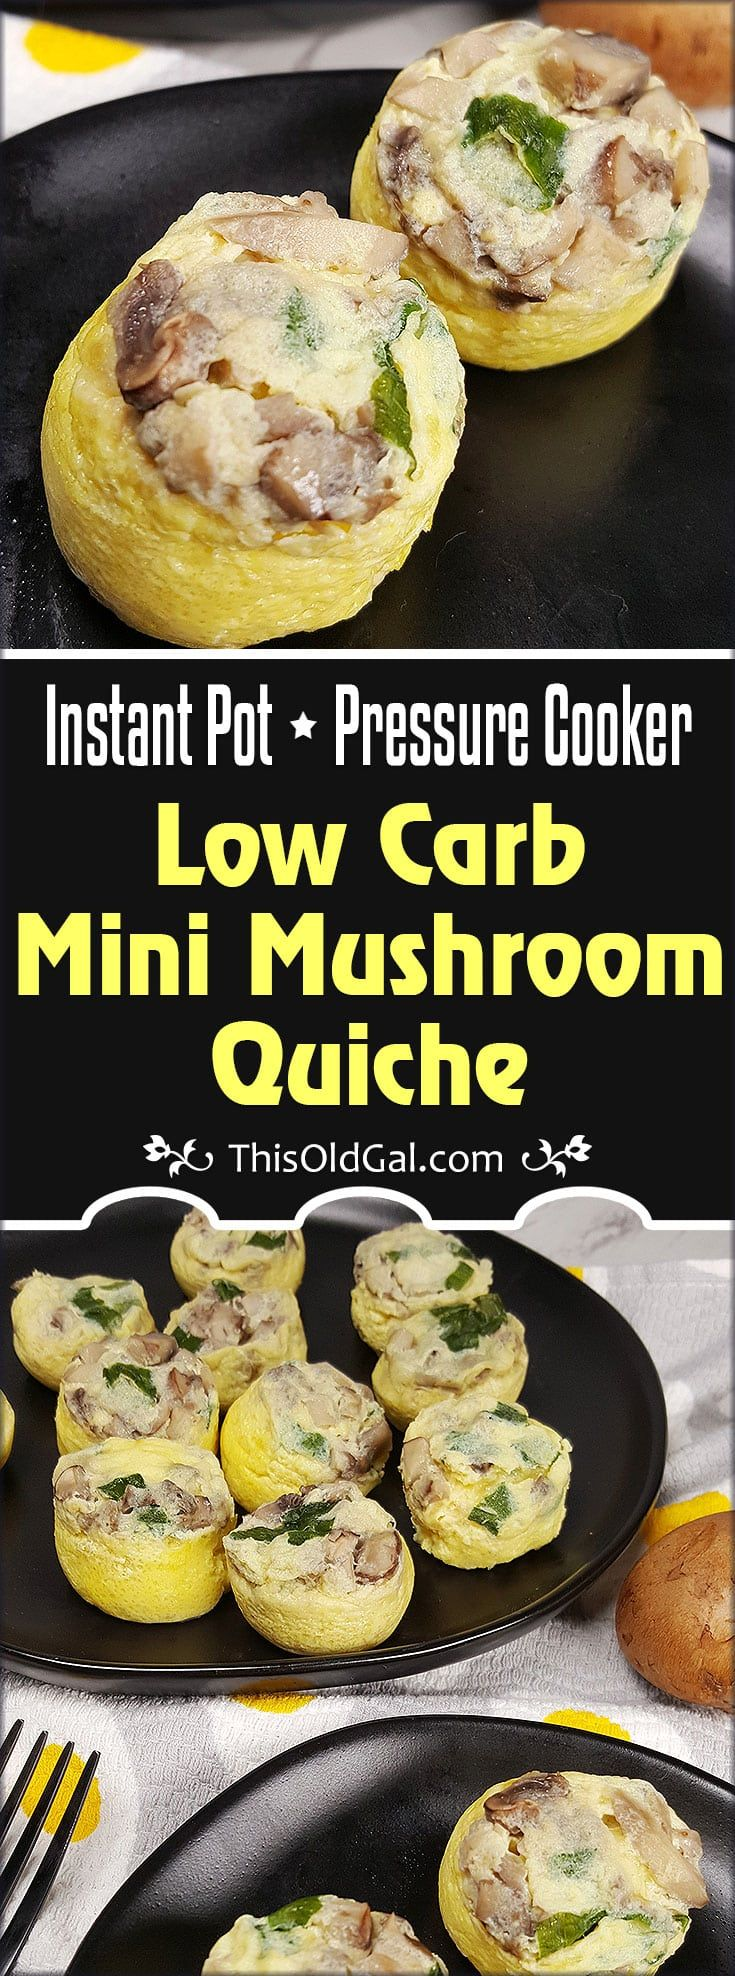 Pressure Cooker Low Carb Mini Mushroom Quiche make a perfect Keto Friendly, Gluten Free breakfast or snack.  Mushrooms blanketed in Fluffy Eggs with a Swiss Cheese Crust is totally and completely delicious. via @thisoldgalcooks